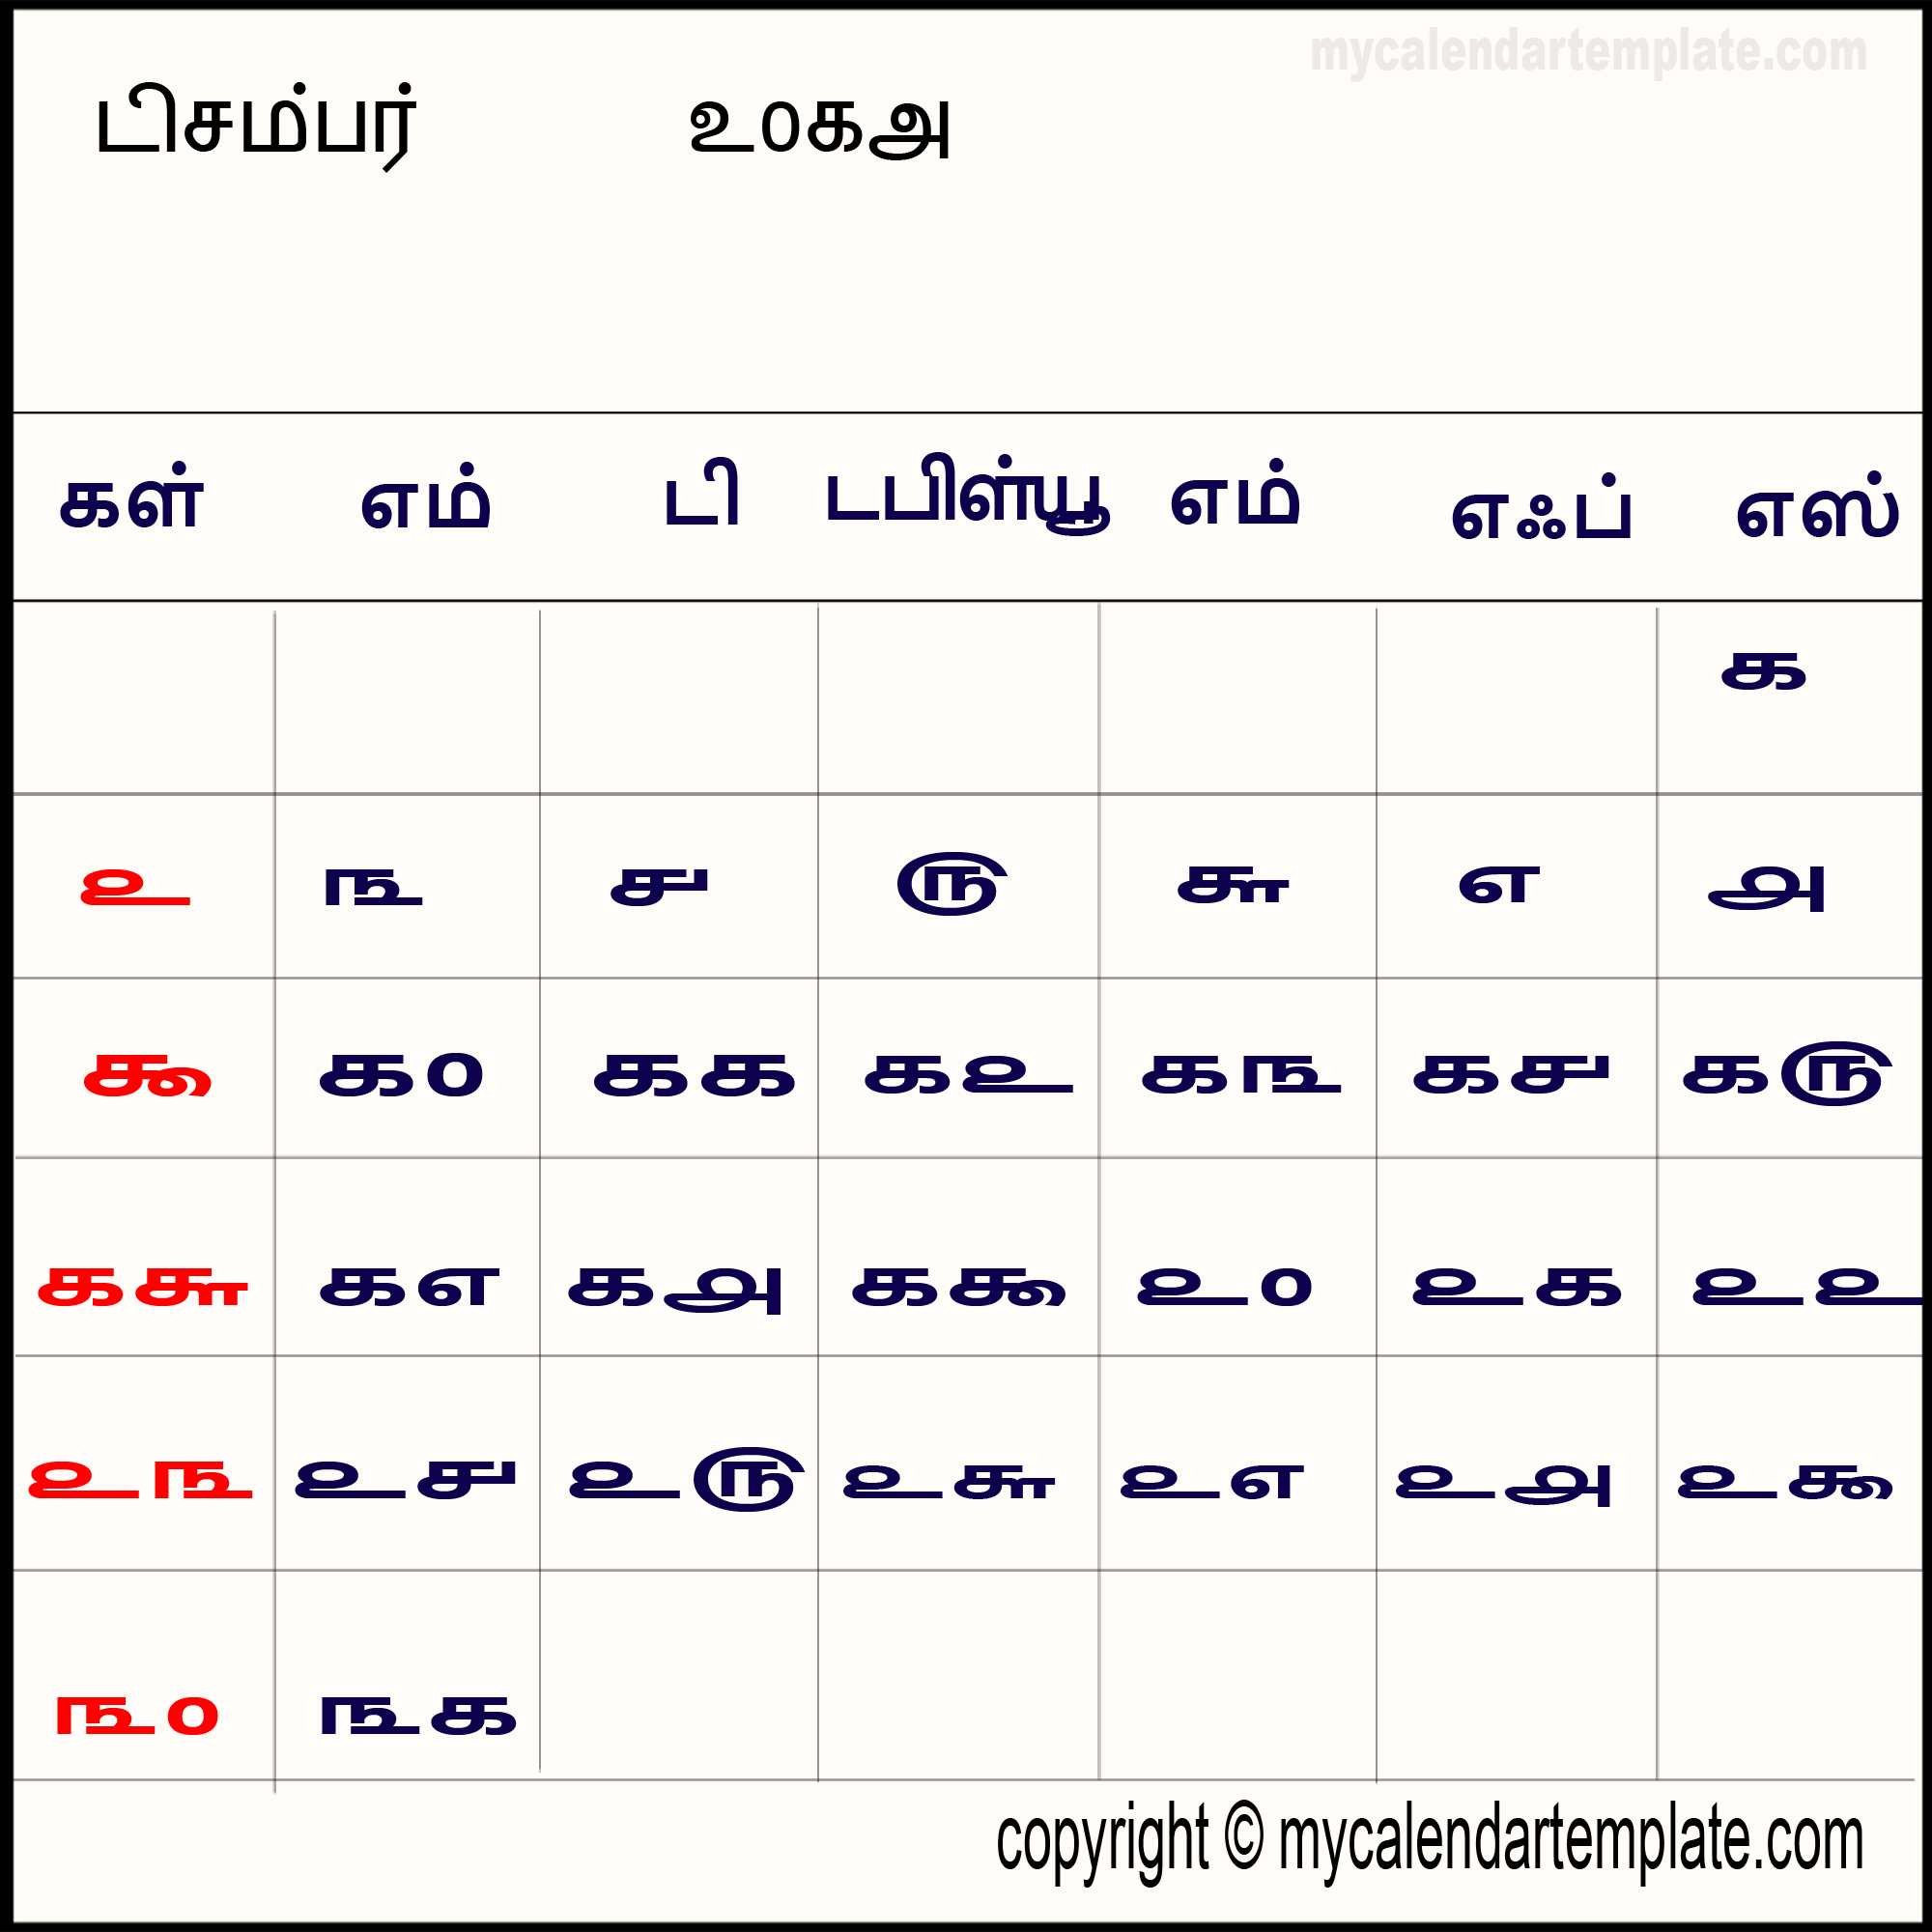 Tamil Calendar 2018 December With Holidays And Festivals